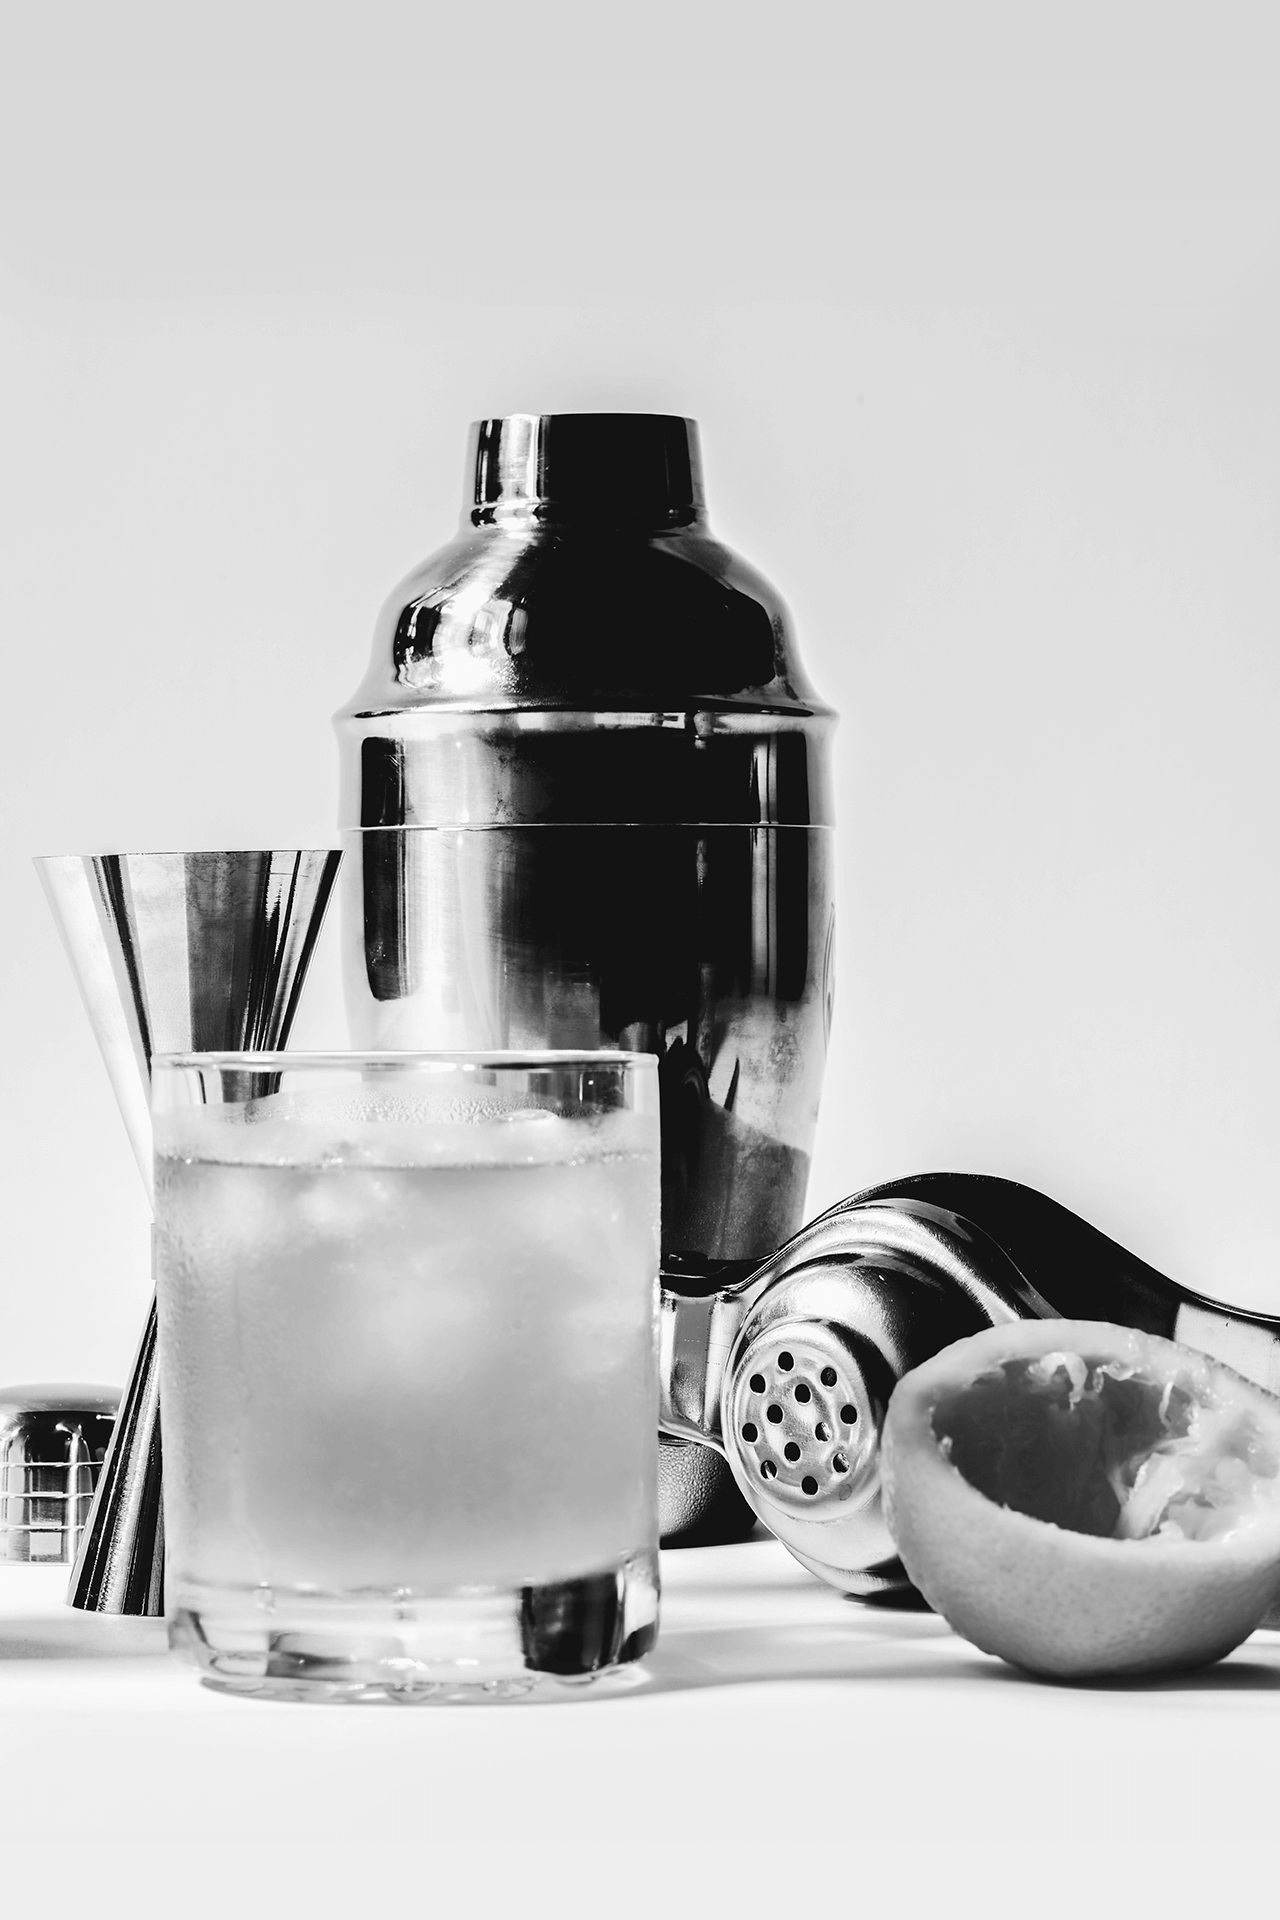 Mixology kit including a jigger, shaker, and a cocktail strainer.